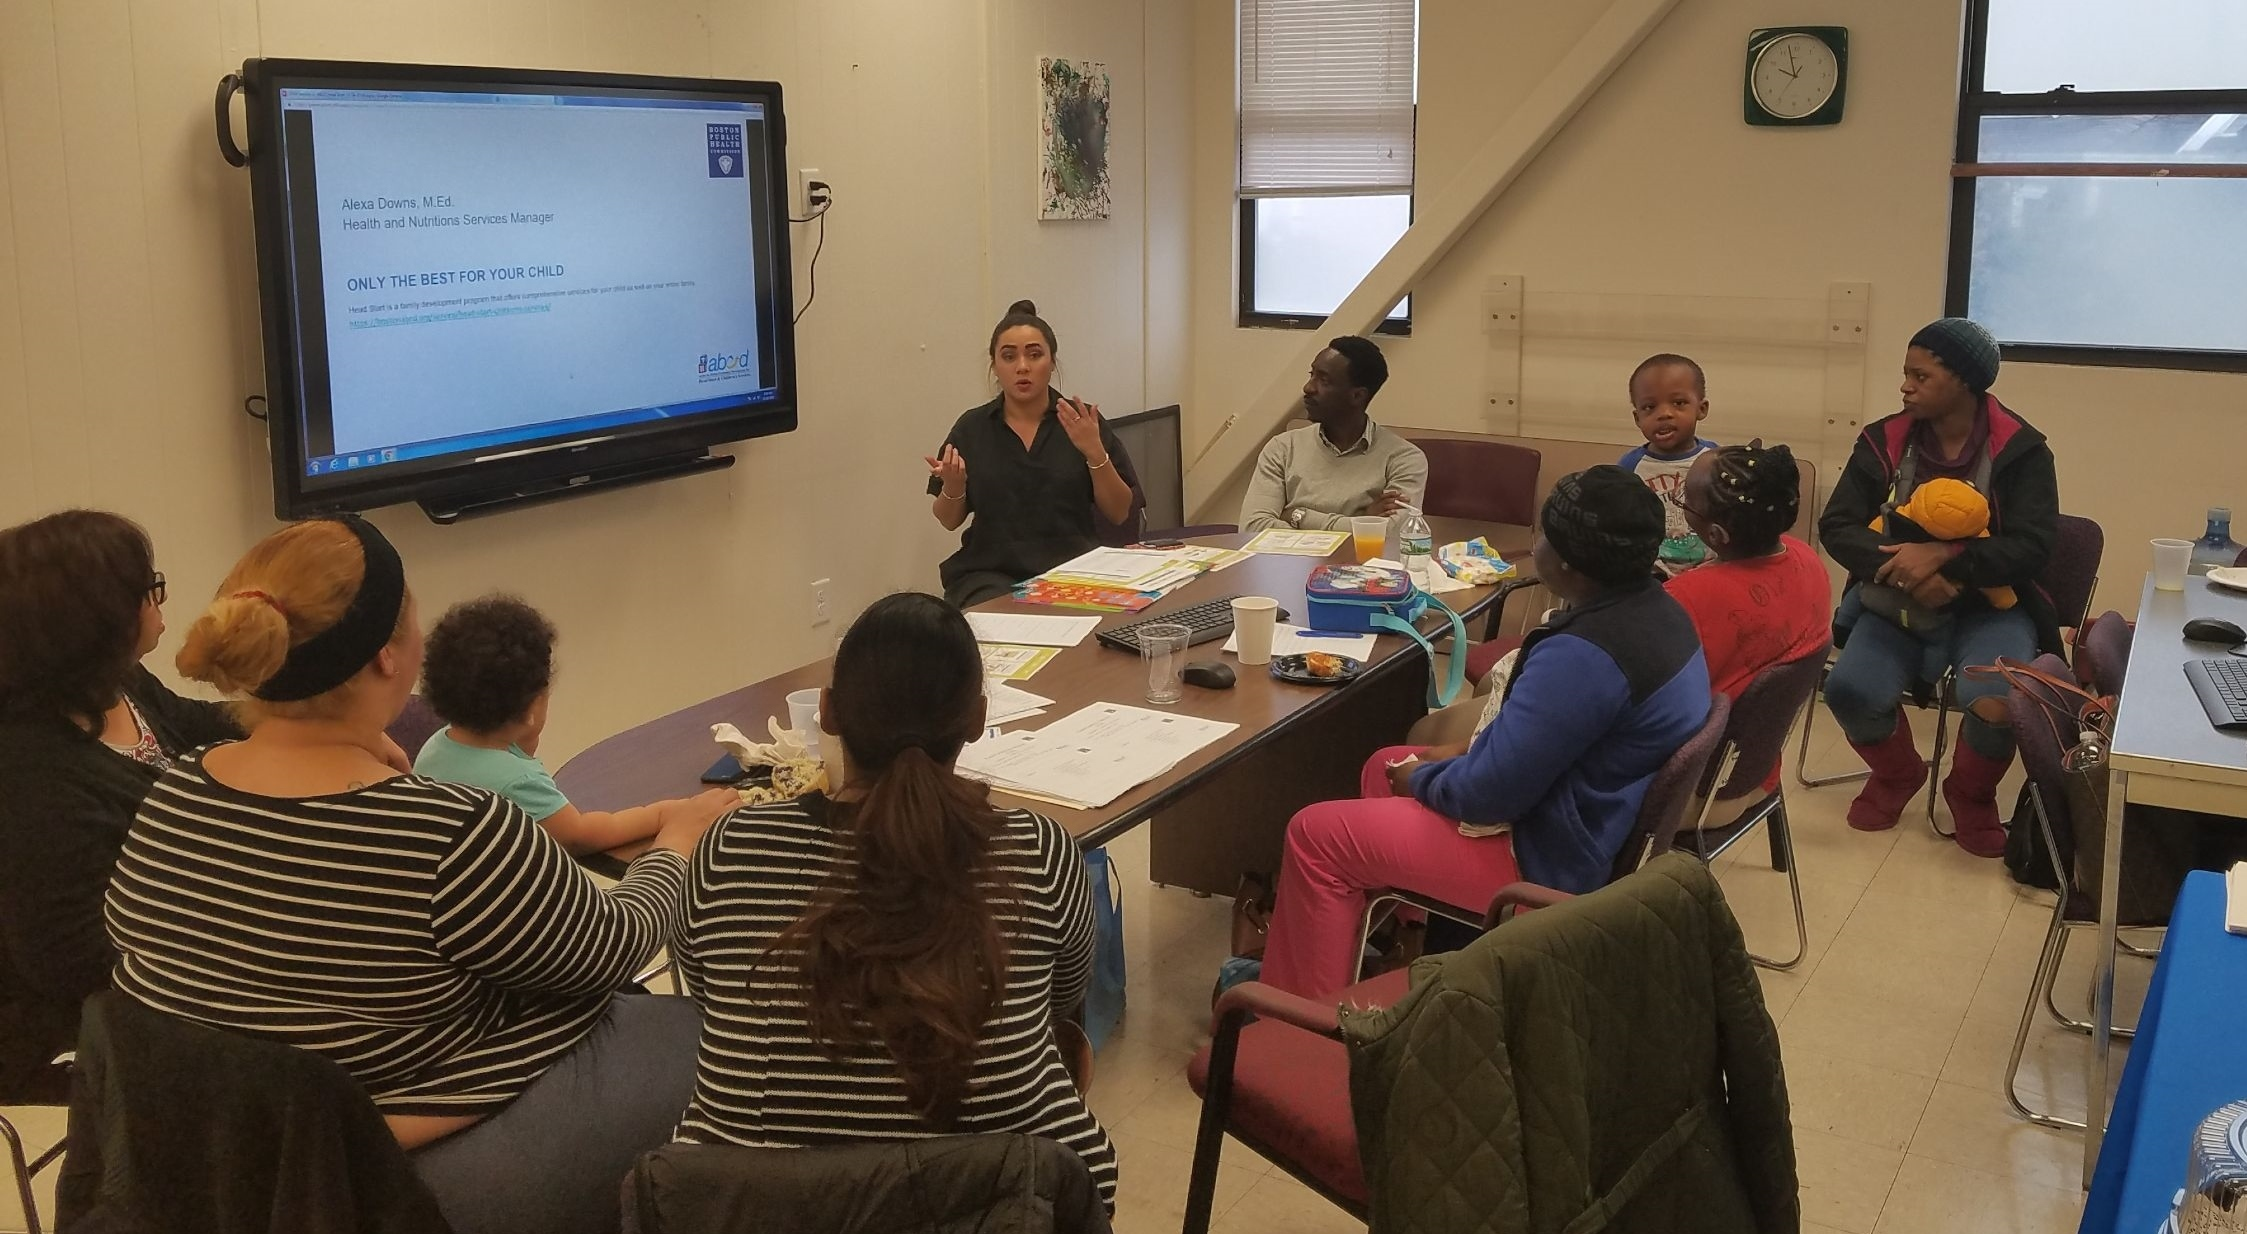 October 24, 2018, the first PAN session ABCD Geneva Avenue. Participants heard from Alexa Down, M. ED and Moussa Cisse (ABCD Health and Nutrition Services Managers) about the importance of having healthier options and the role as service managers as it relates to asthma and nutrition at the childcare center. Participants also learned about local food resources such as Fresh Truck, Fair Foods, SNAP, and other affordable food resources in Boston.